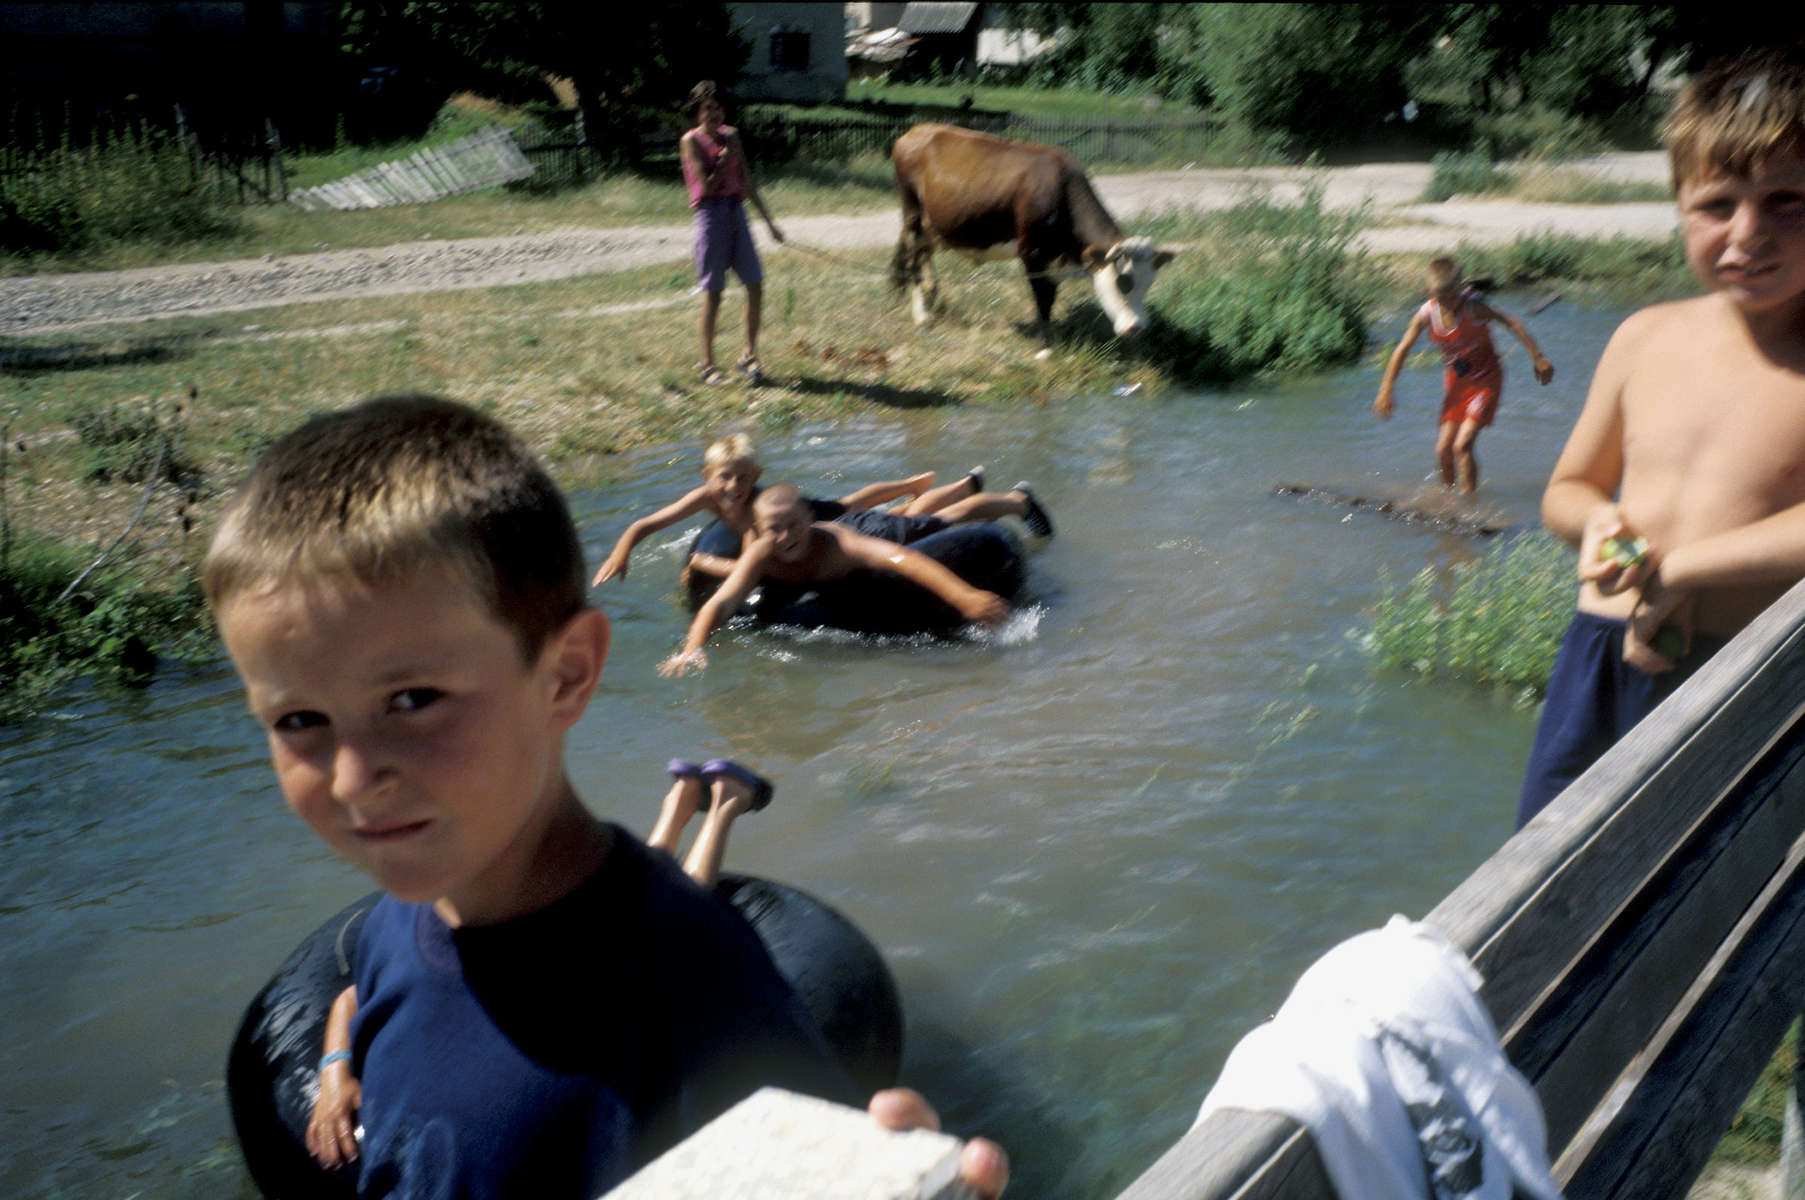 Children play in the river that runs through the village of Vesela, which has had a refugee return rate of some ninety percent of its pre-war population of Muslims, Serbs and Croats. Vesela has been hailed as a sucess story by Bosnian officials; in the aftermath of \{quote}ethnic cleansing\{quote} and genocide many towns and villages remain heavily populated by one group or another, with many refugees reluctant to return to the homes they fled during the war. July 2001.